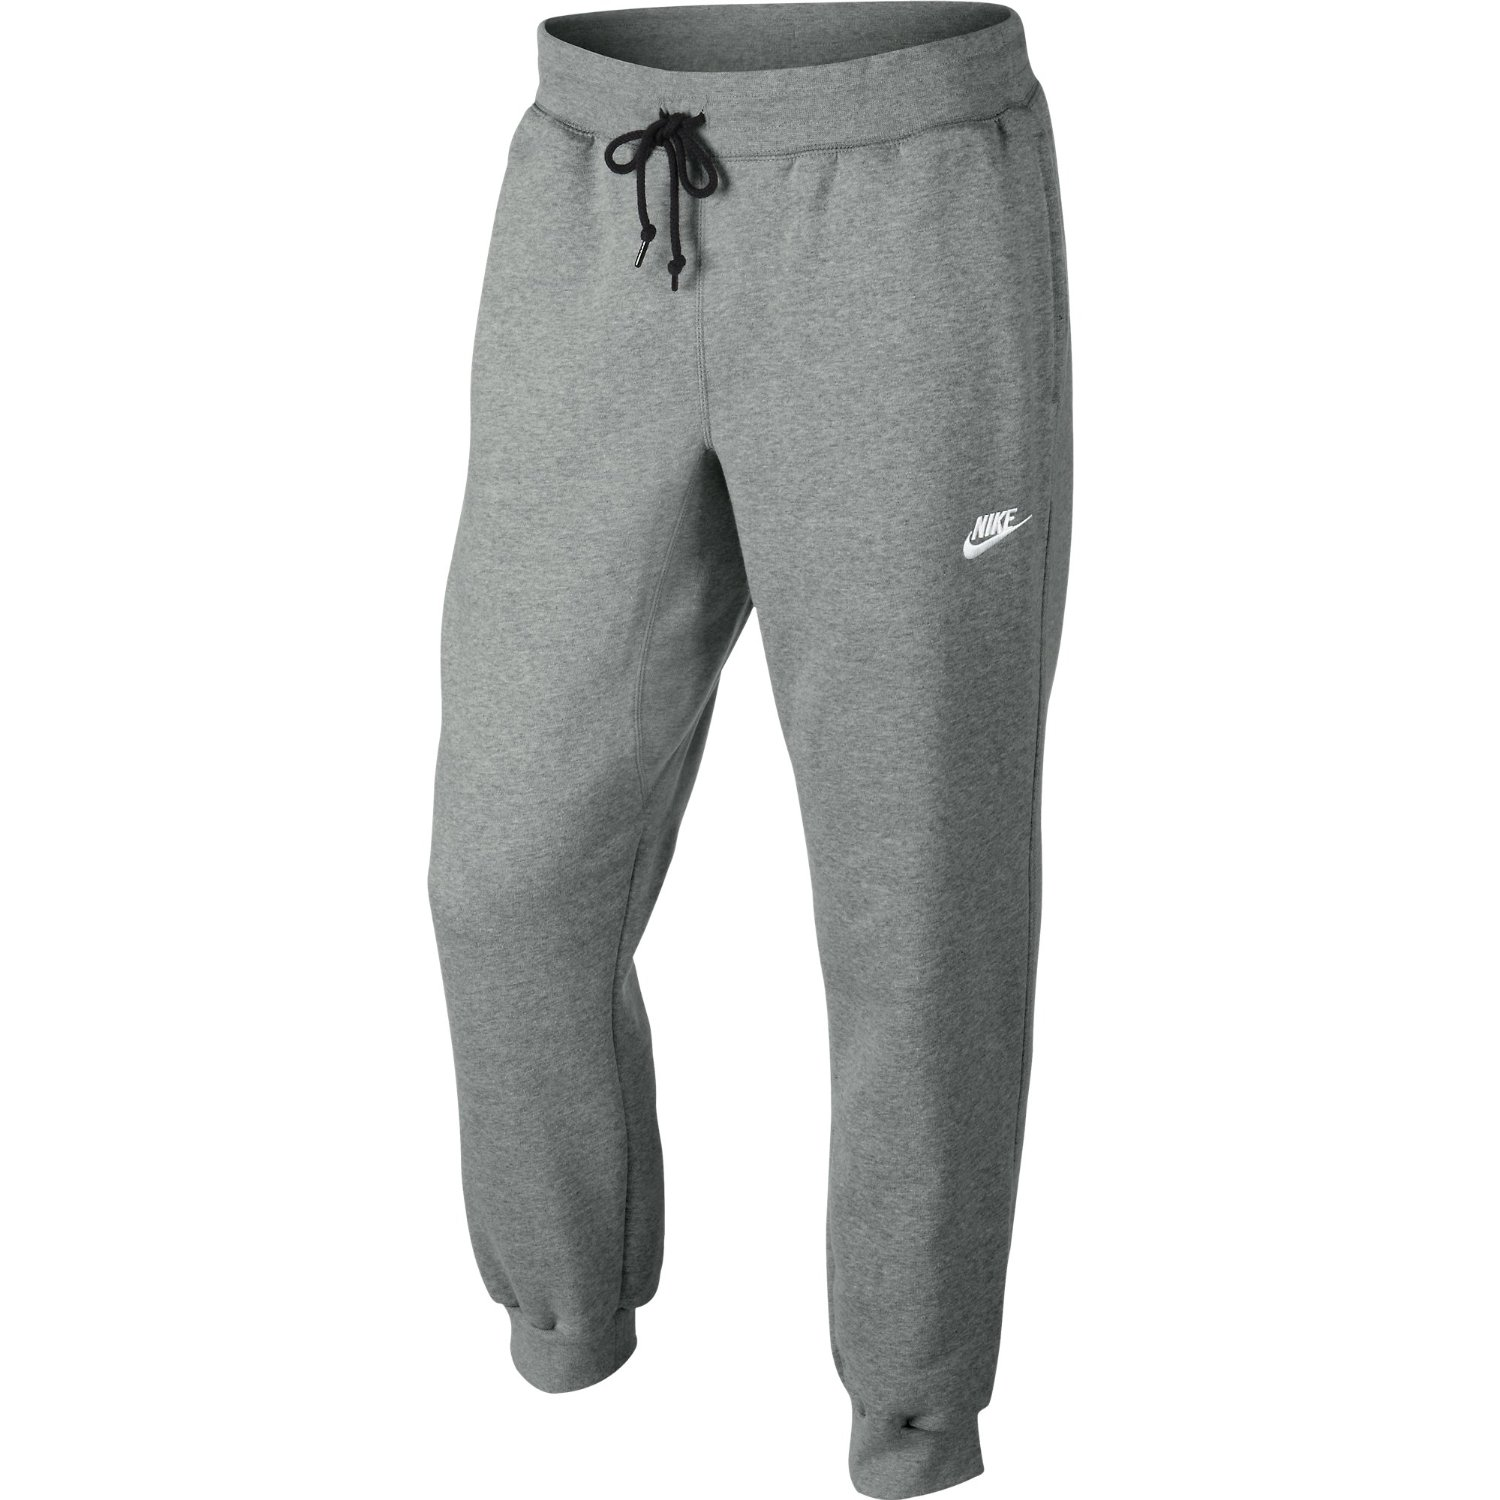 Top 10 Best Men's Sweatpants for Athletic in 2020 reviews